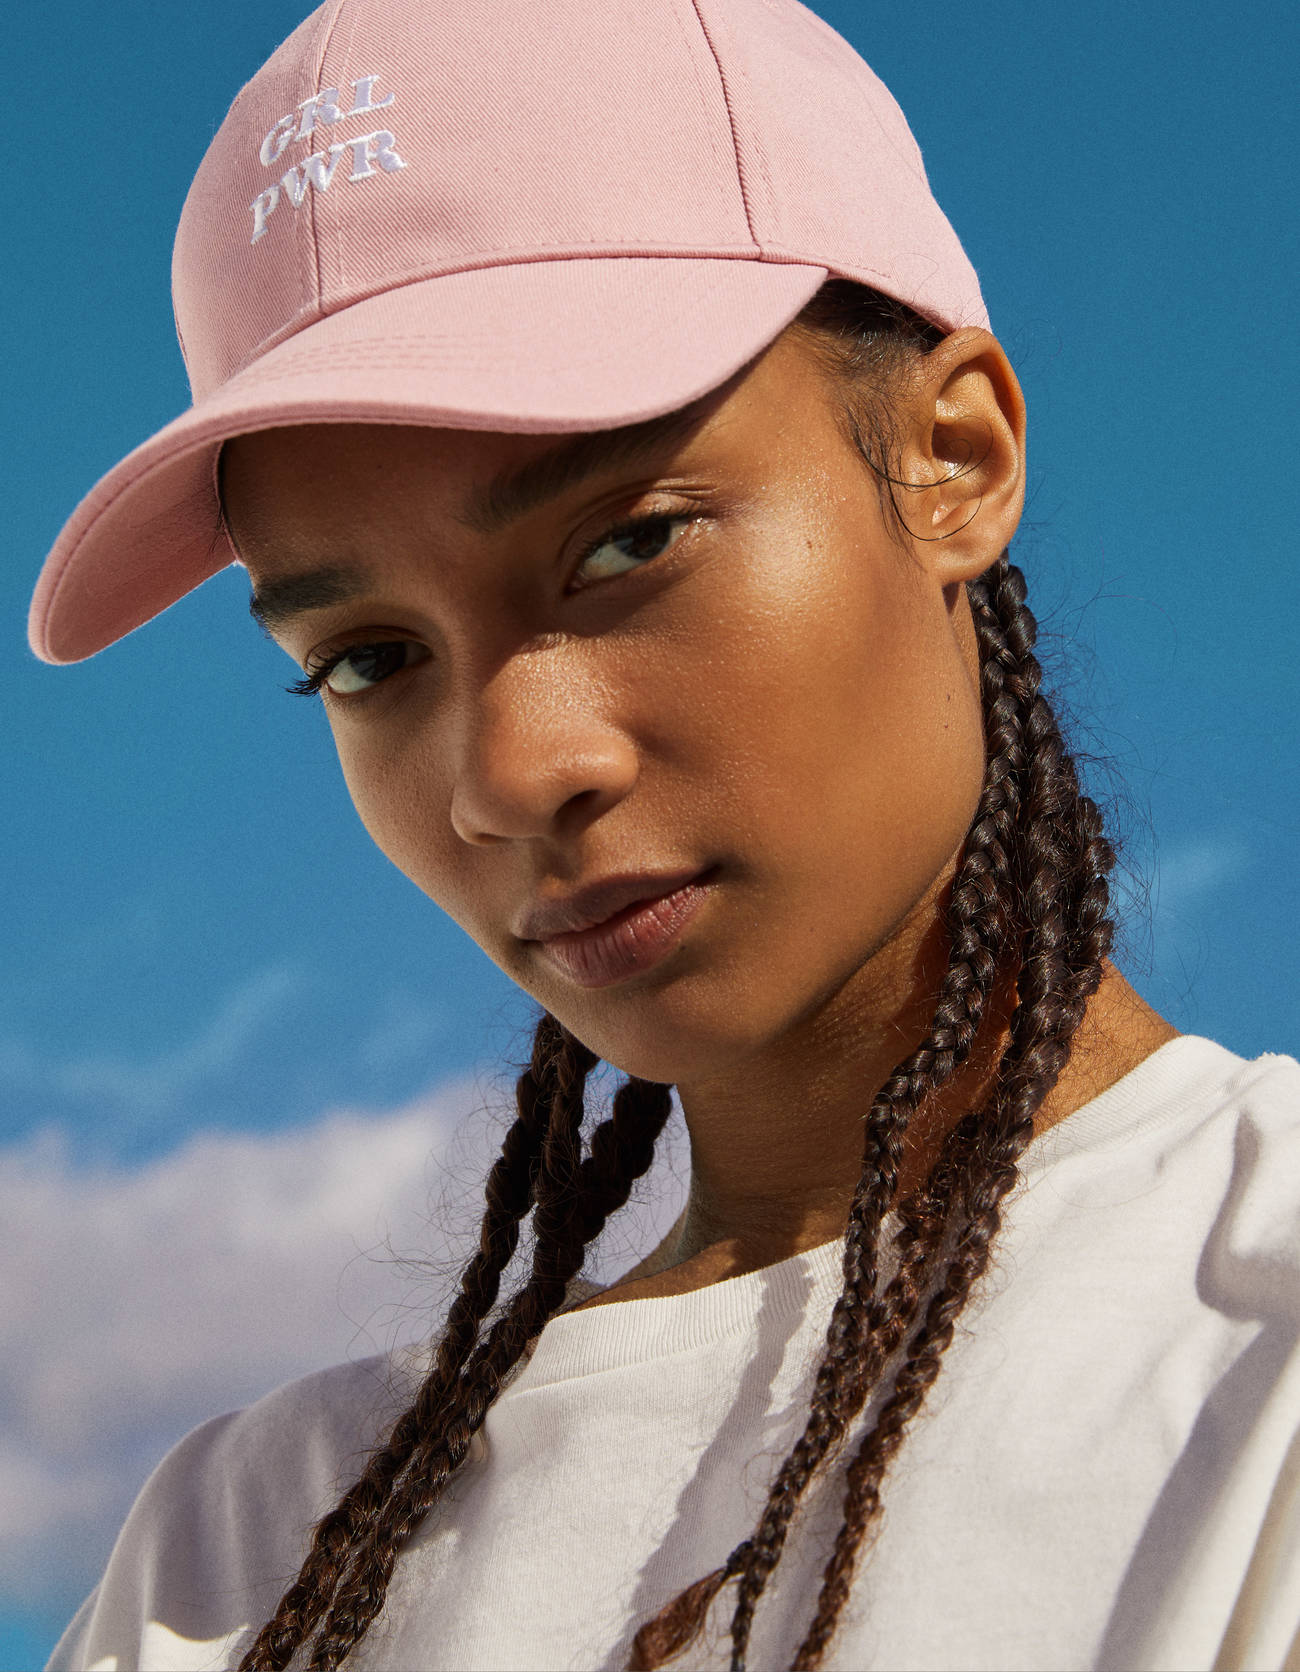 Hat pastel pink with embroidered 'Girl Power'